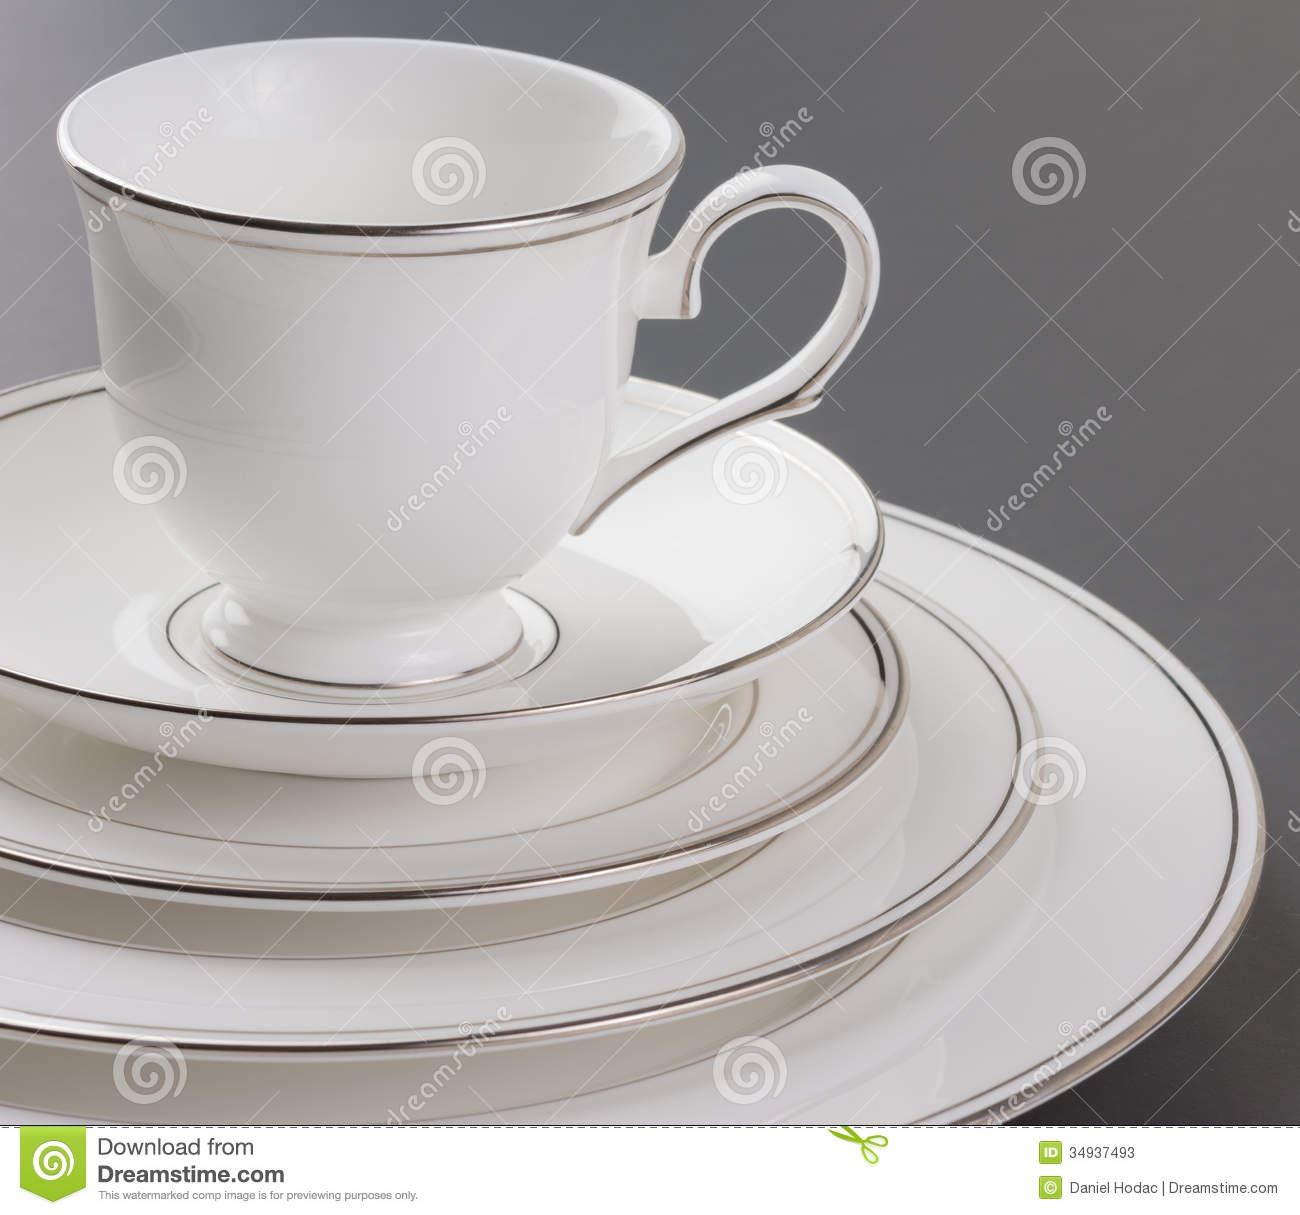 Dinner Set Of Beautiful White Gold Rim And Cup Stock  : dinner set beautiful white gold rim cup black background 34937493 from www.dreamstime.com size 1300 x 1215 jpeg 105kB